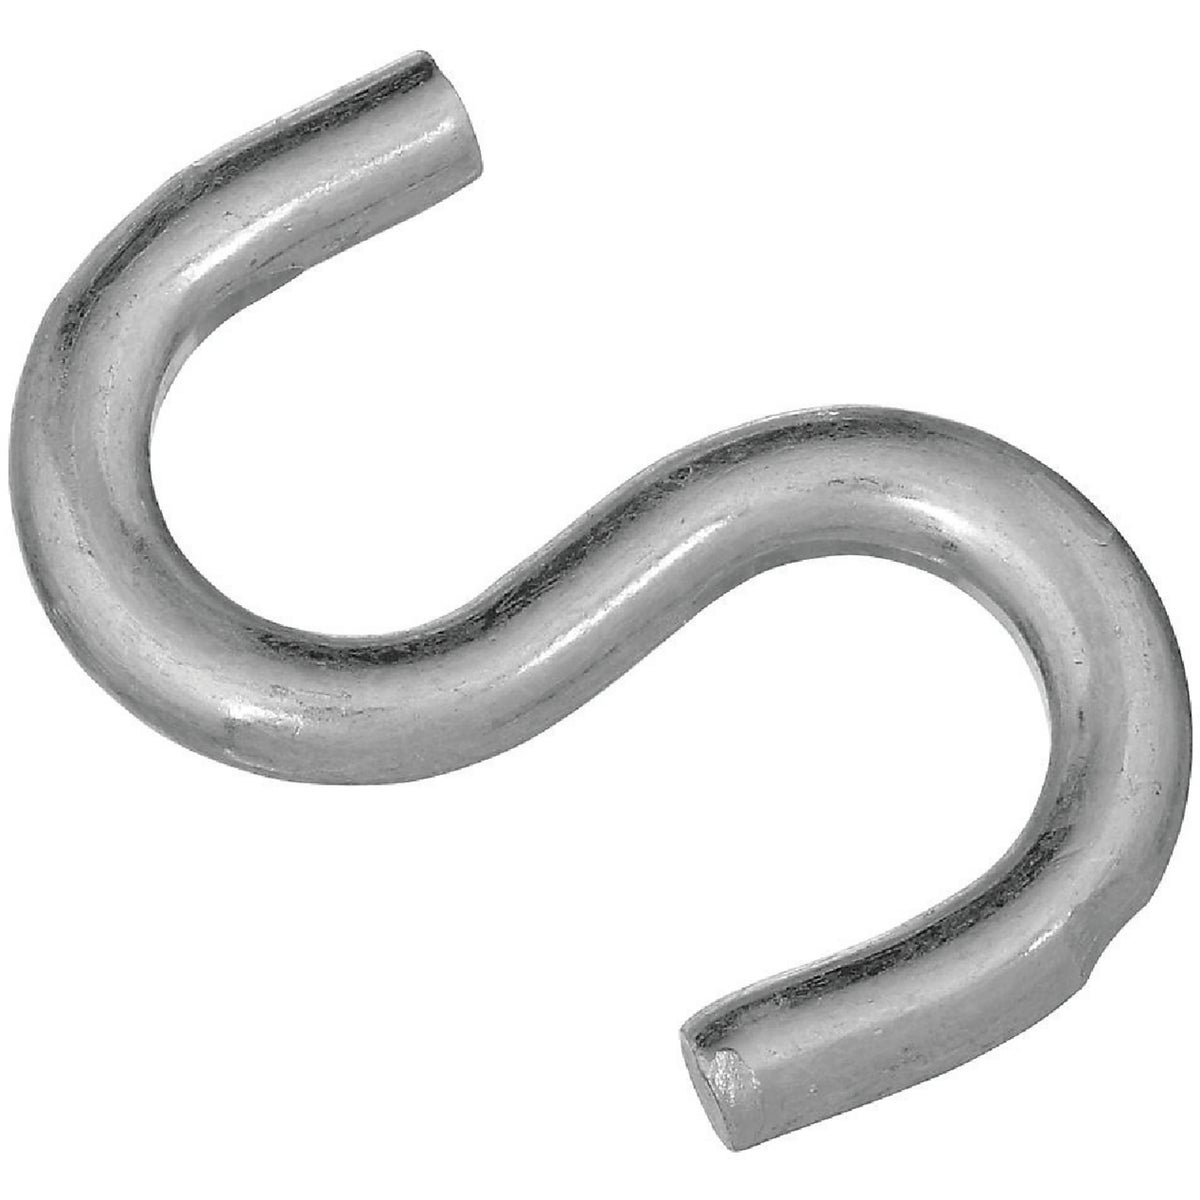 "2-1/2"" HEAVY OPEN S HOOK - N121715 by National Mfg Co"